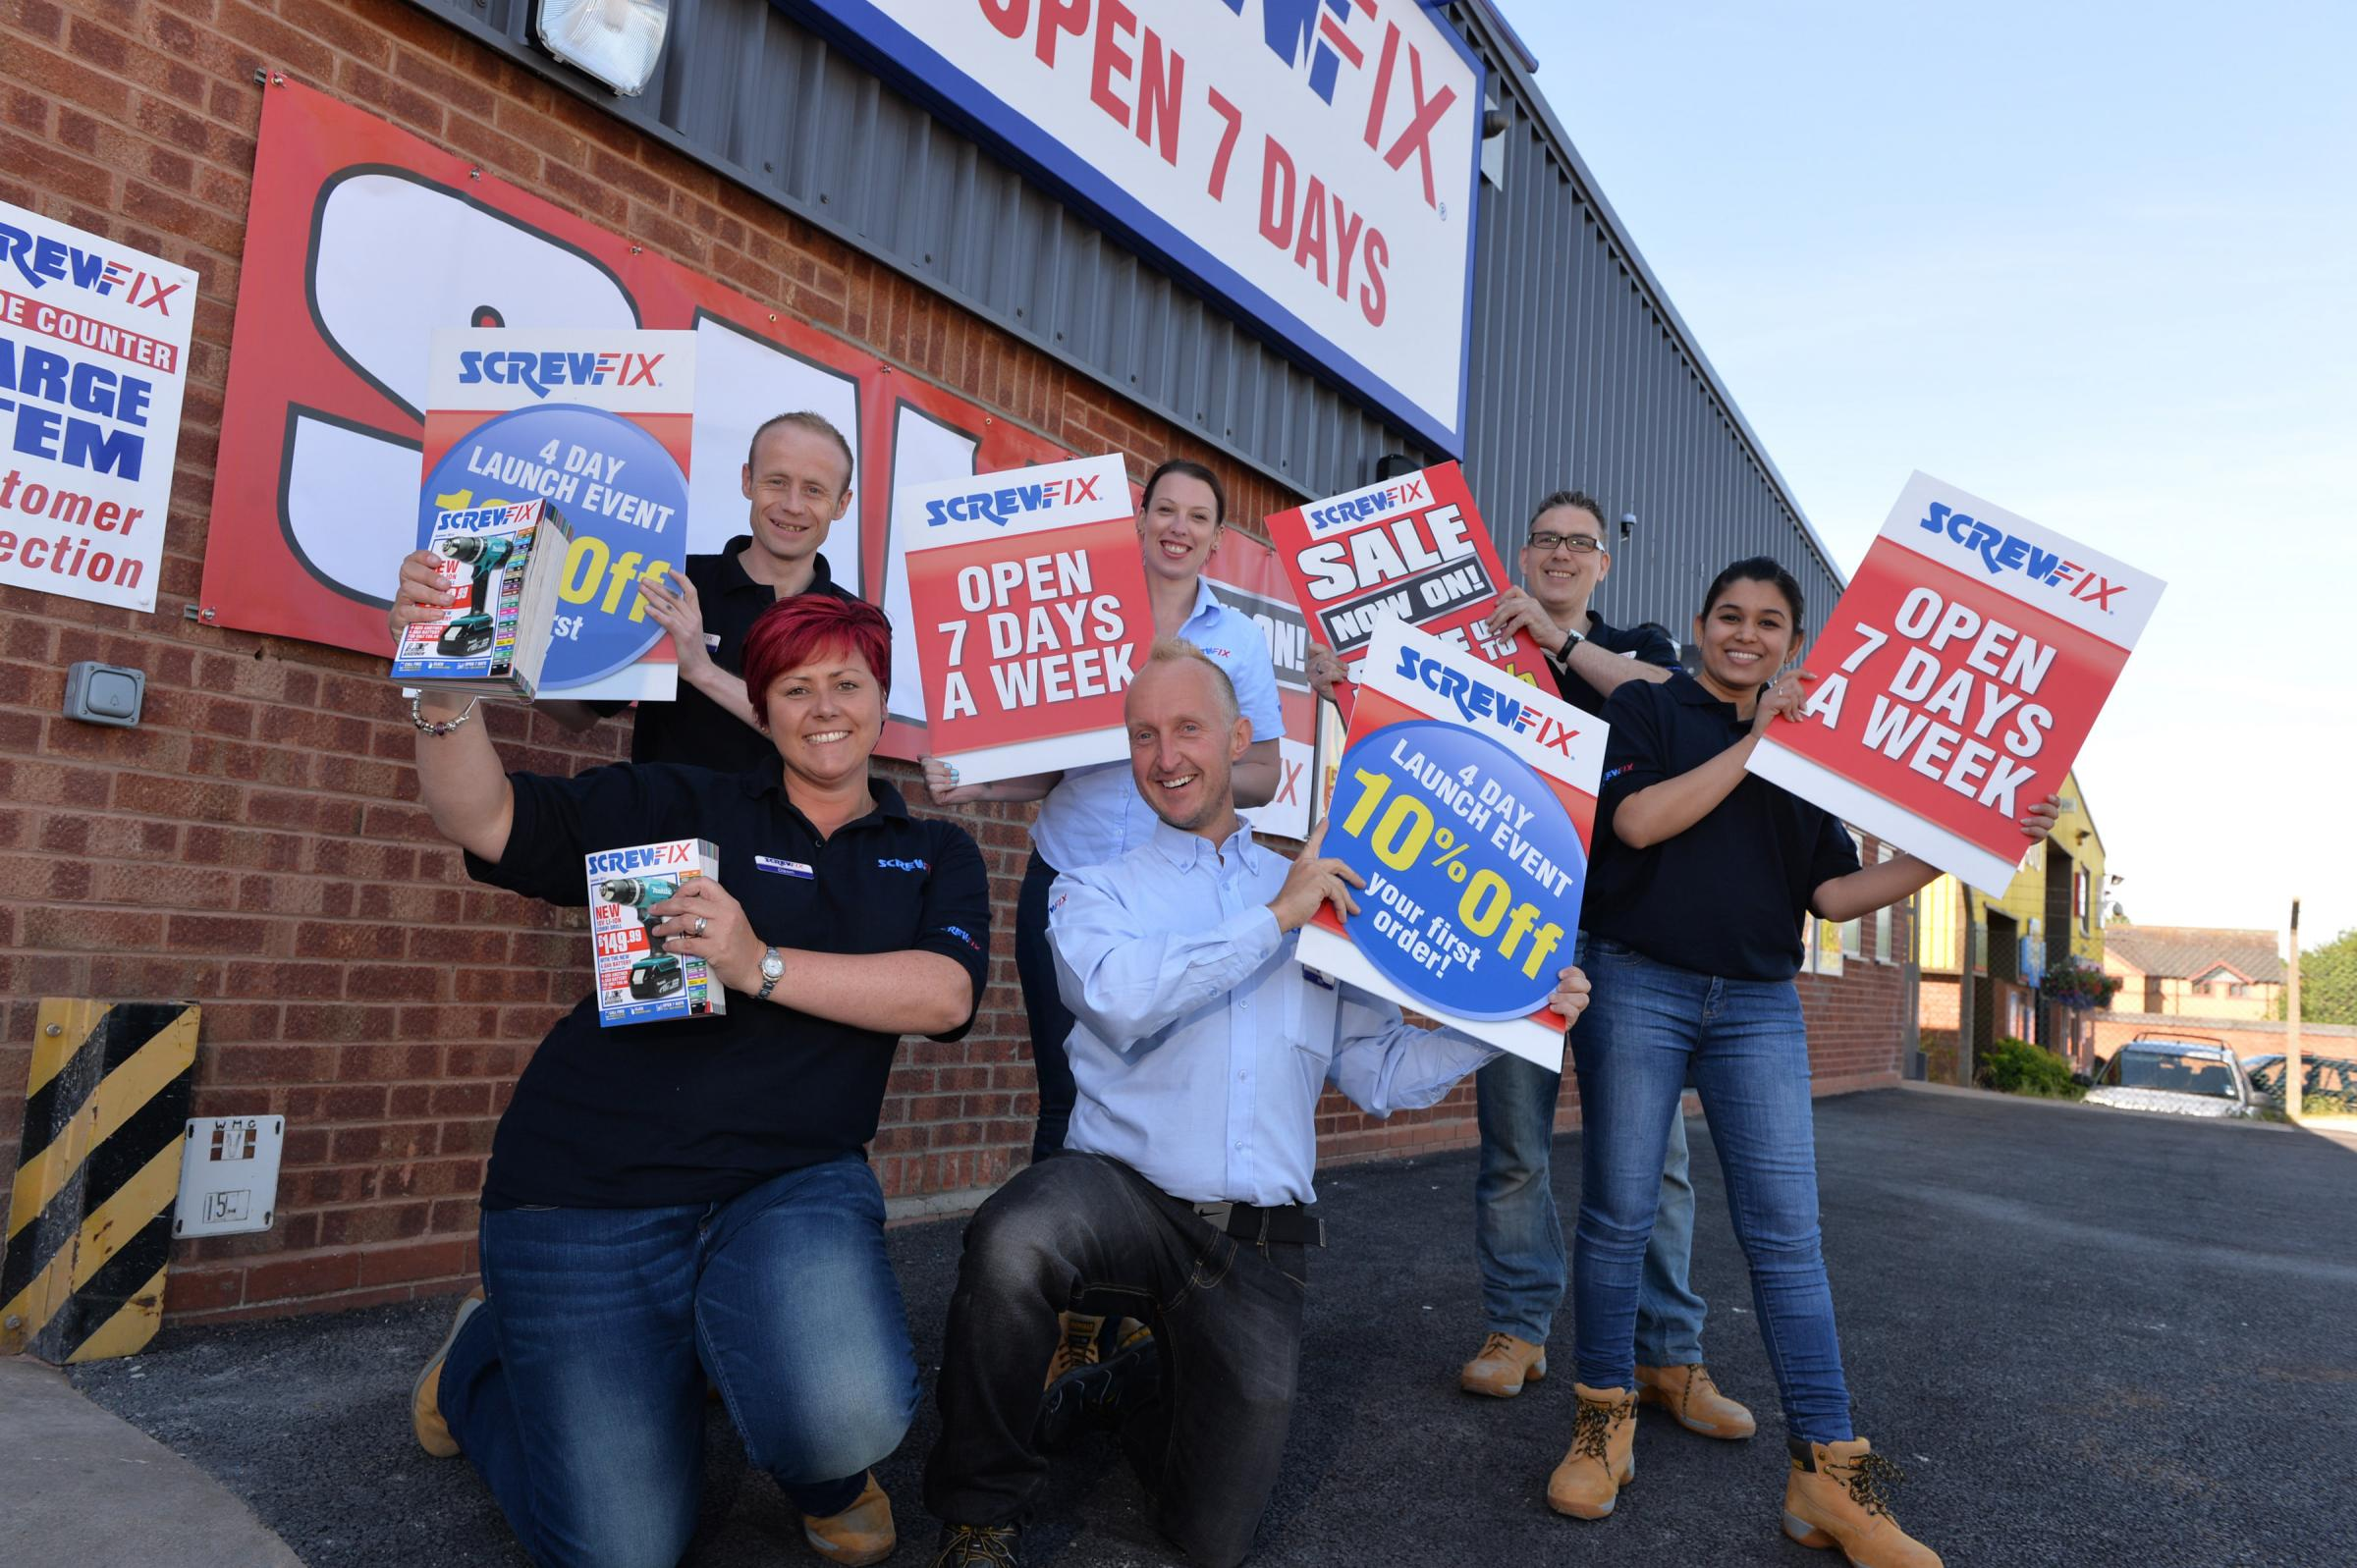 Bromsgrove Screwfix team back row (left to right) Dean Cotton, Alana Hackett and Tony Pinfield, front row (left to right) Dawn Gregg, Will